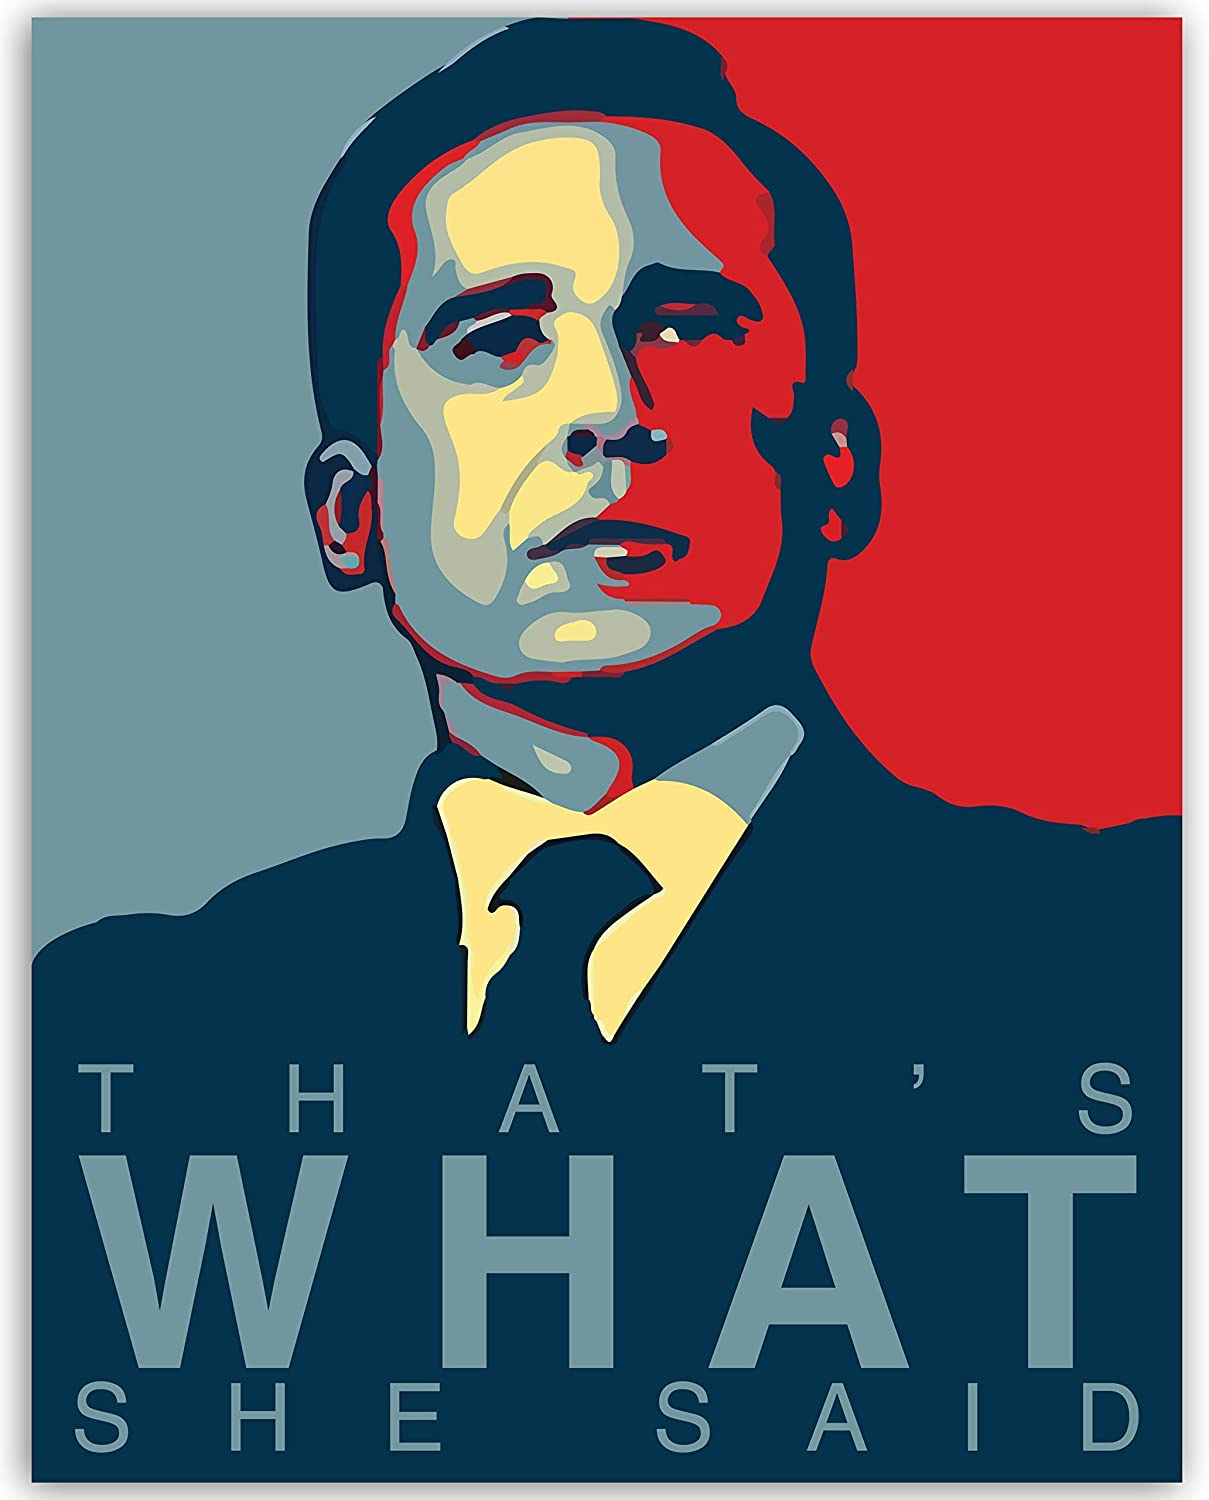 Michael Scott Funny Quote Poster - That's What She Said - 11x14 UNFRAMED Print - Hilarious Office Decor - WallWorthyPrints - Great Gift For Fans Of The Office TV Show